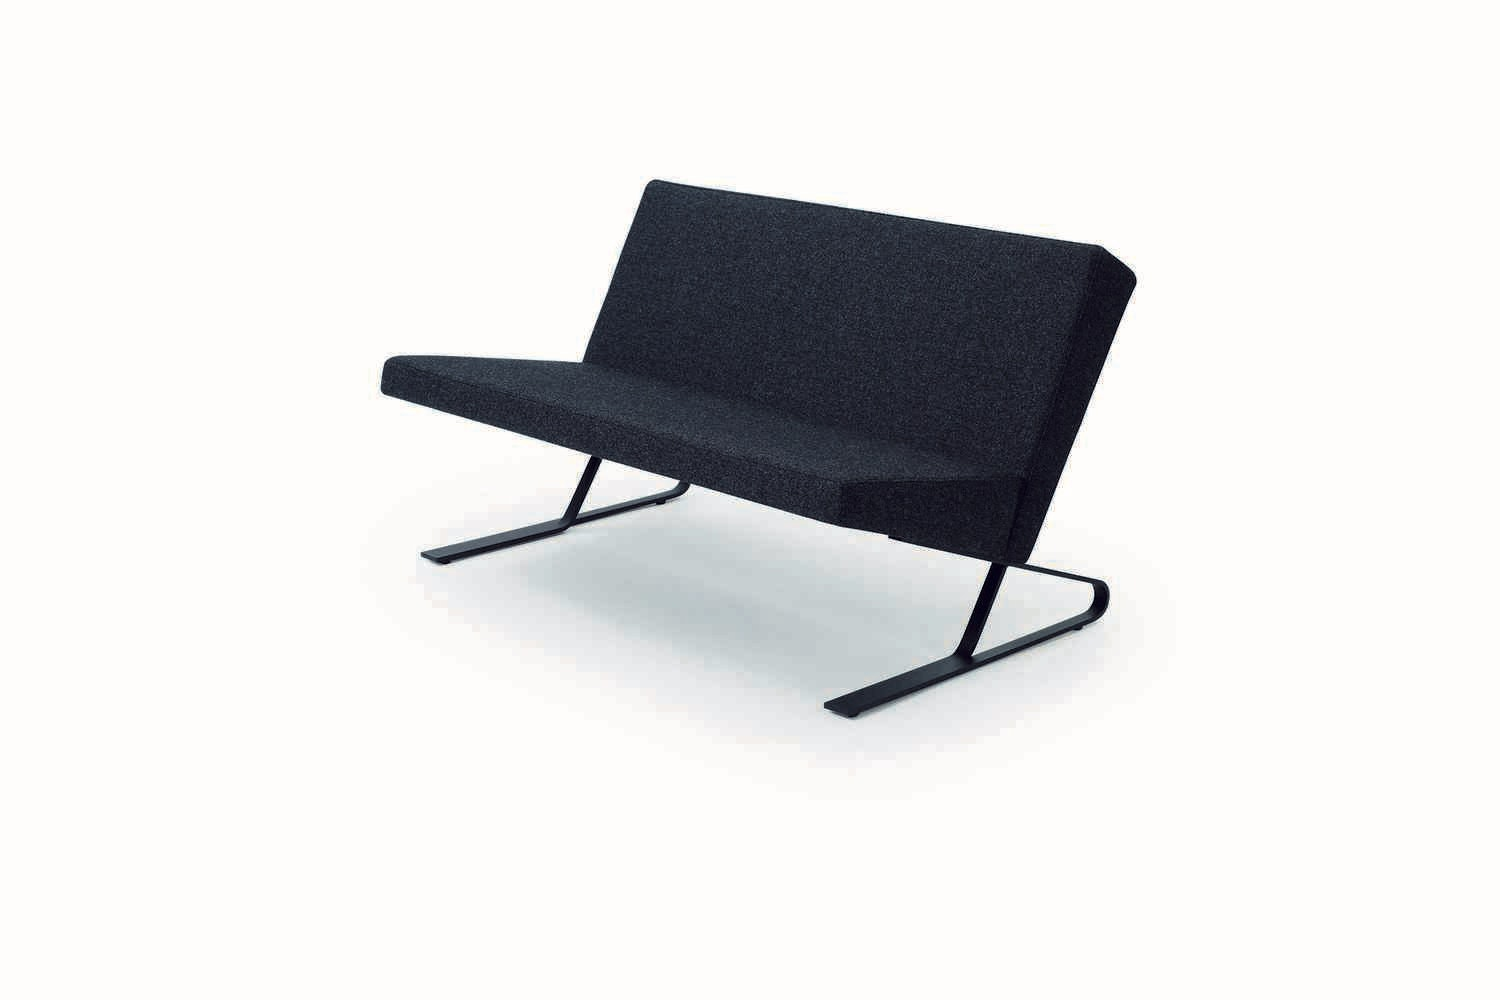 Satyr Two-seater by ForUse for ClassiCon